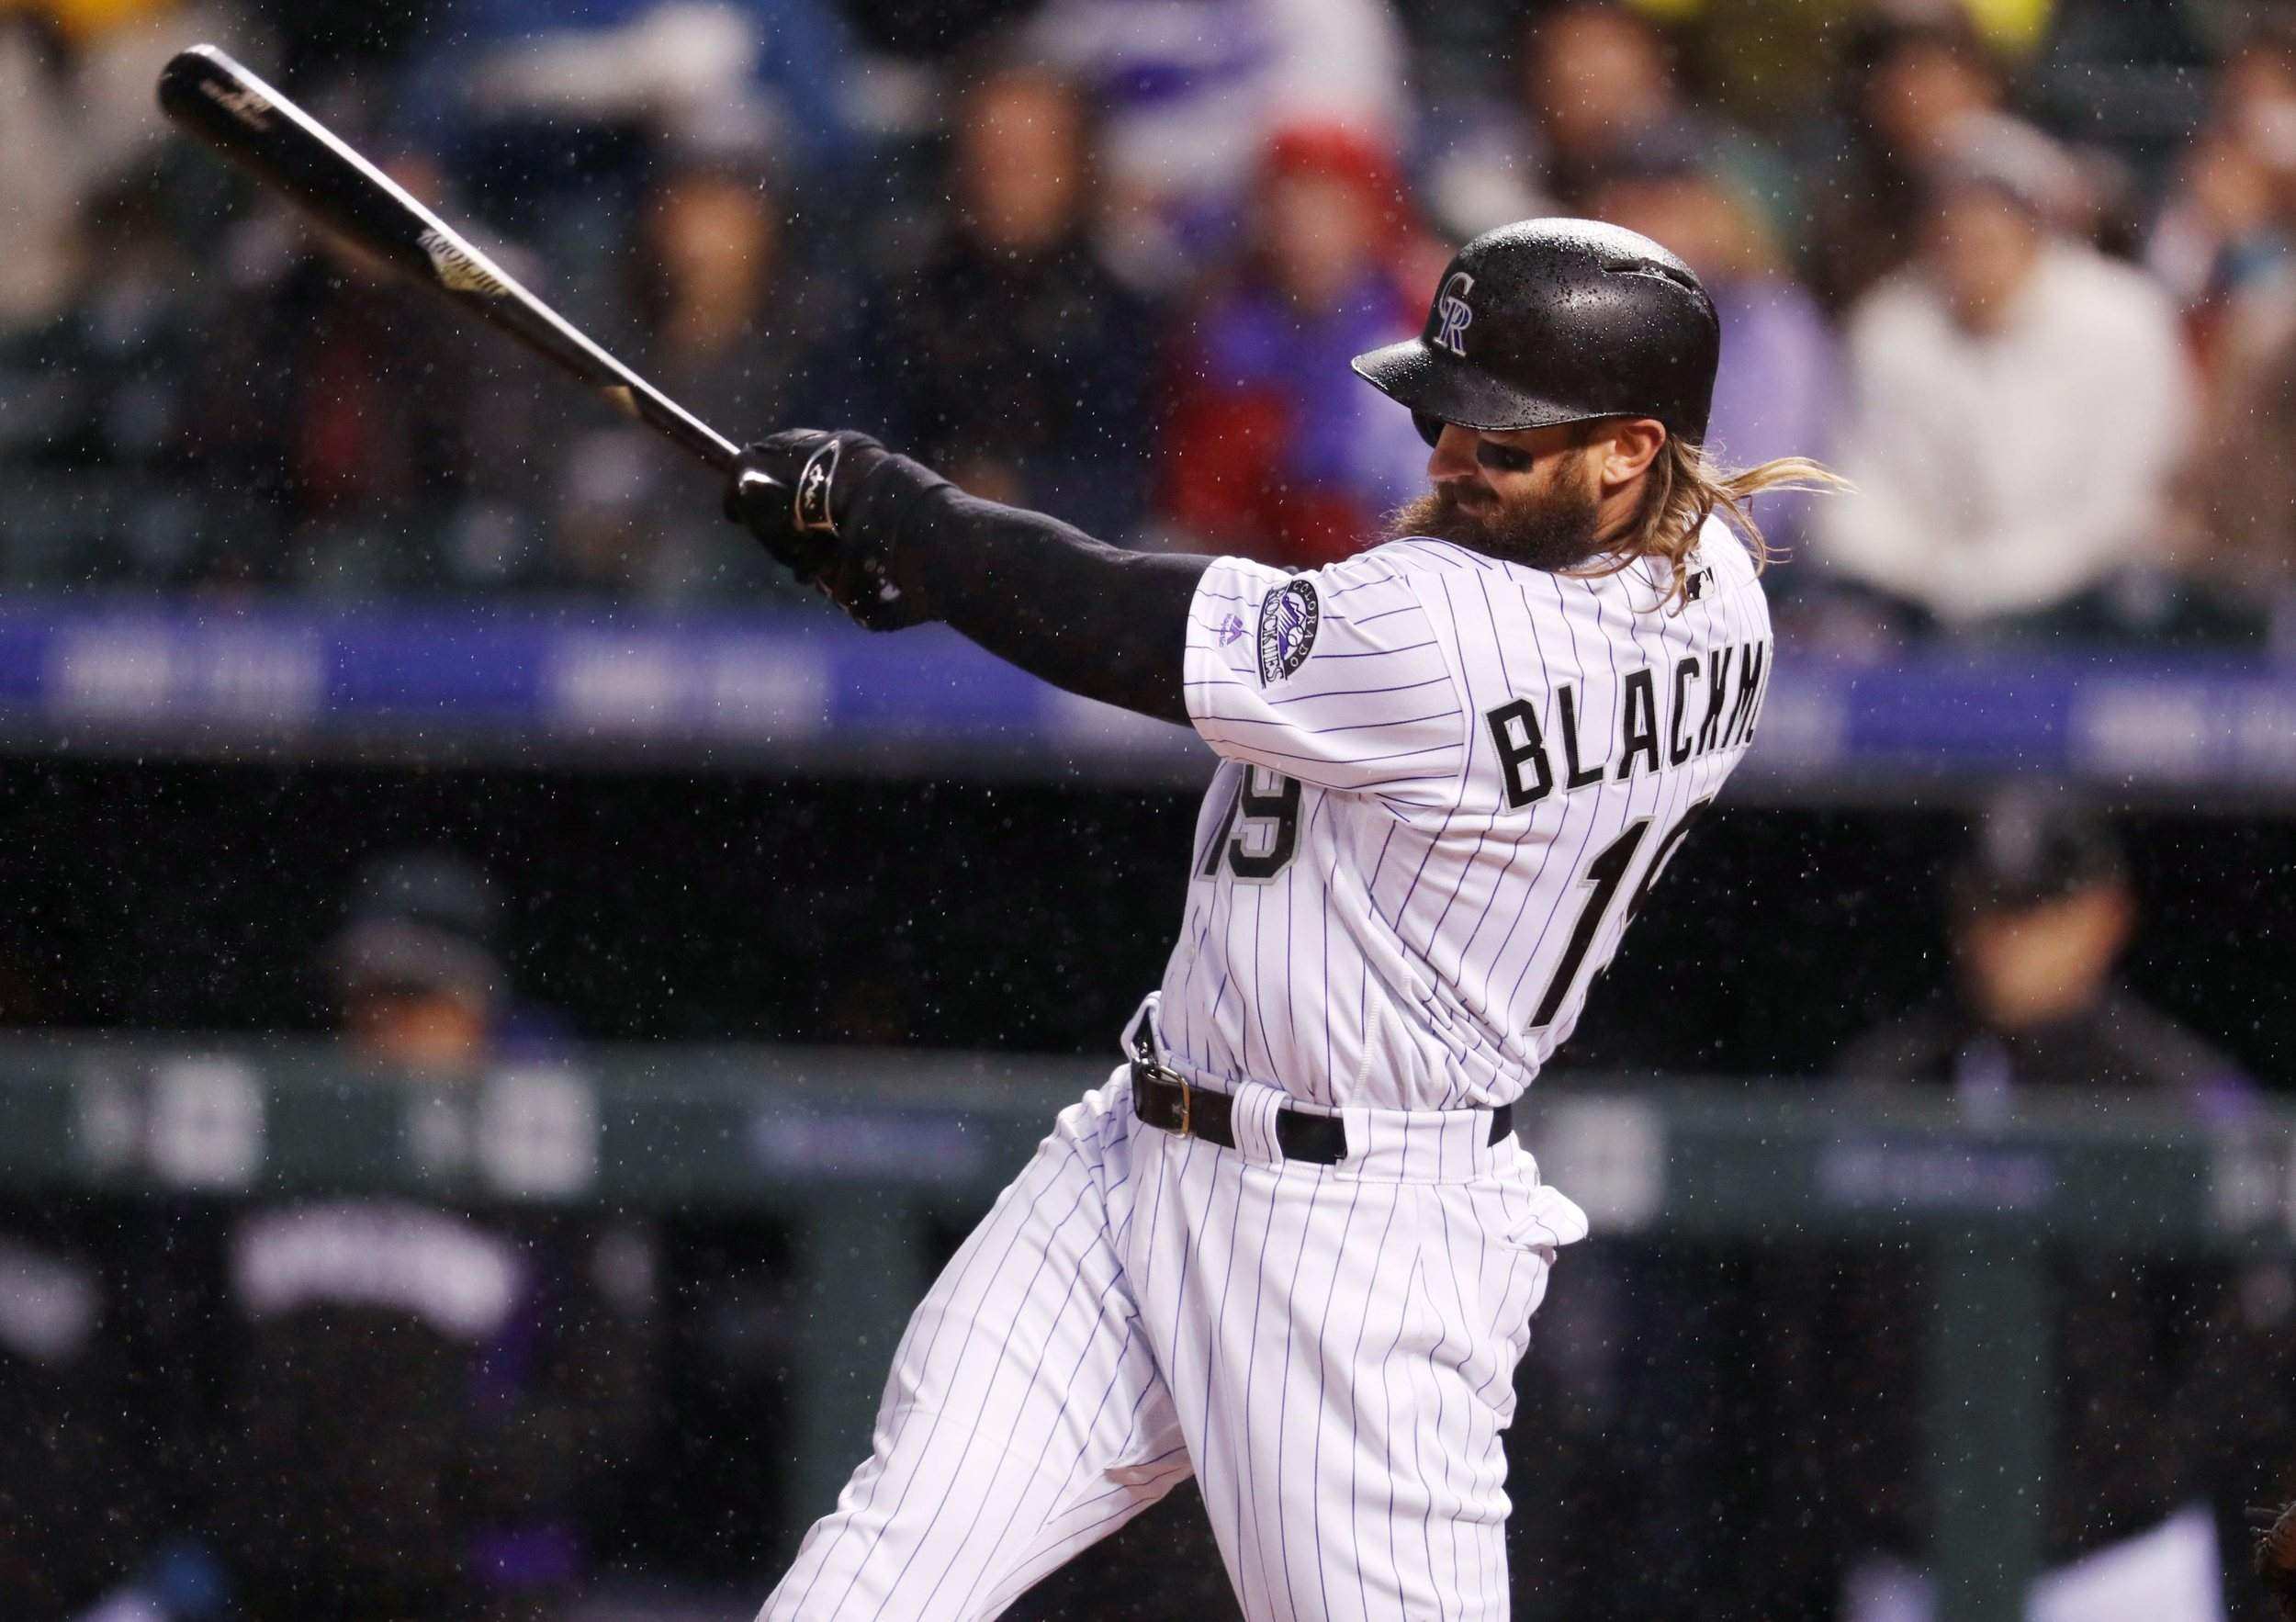 Rockies still a contender in the division